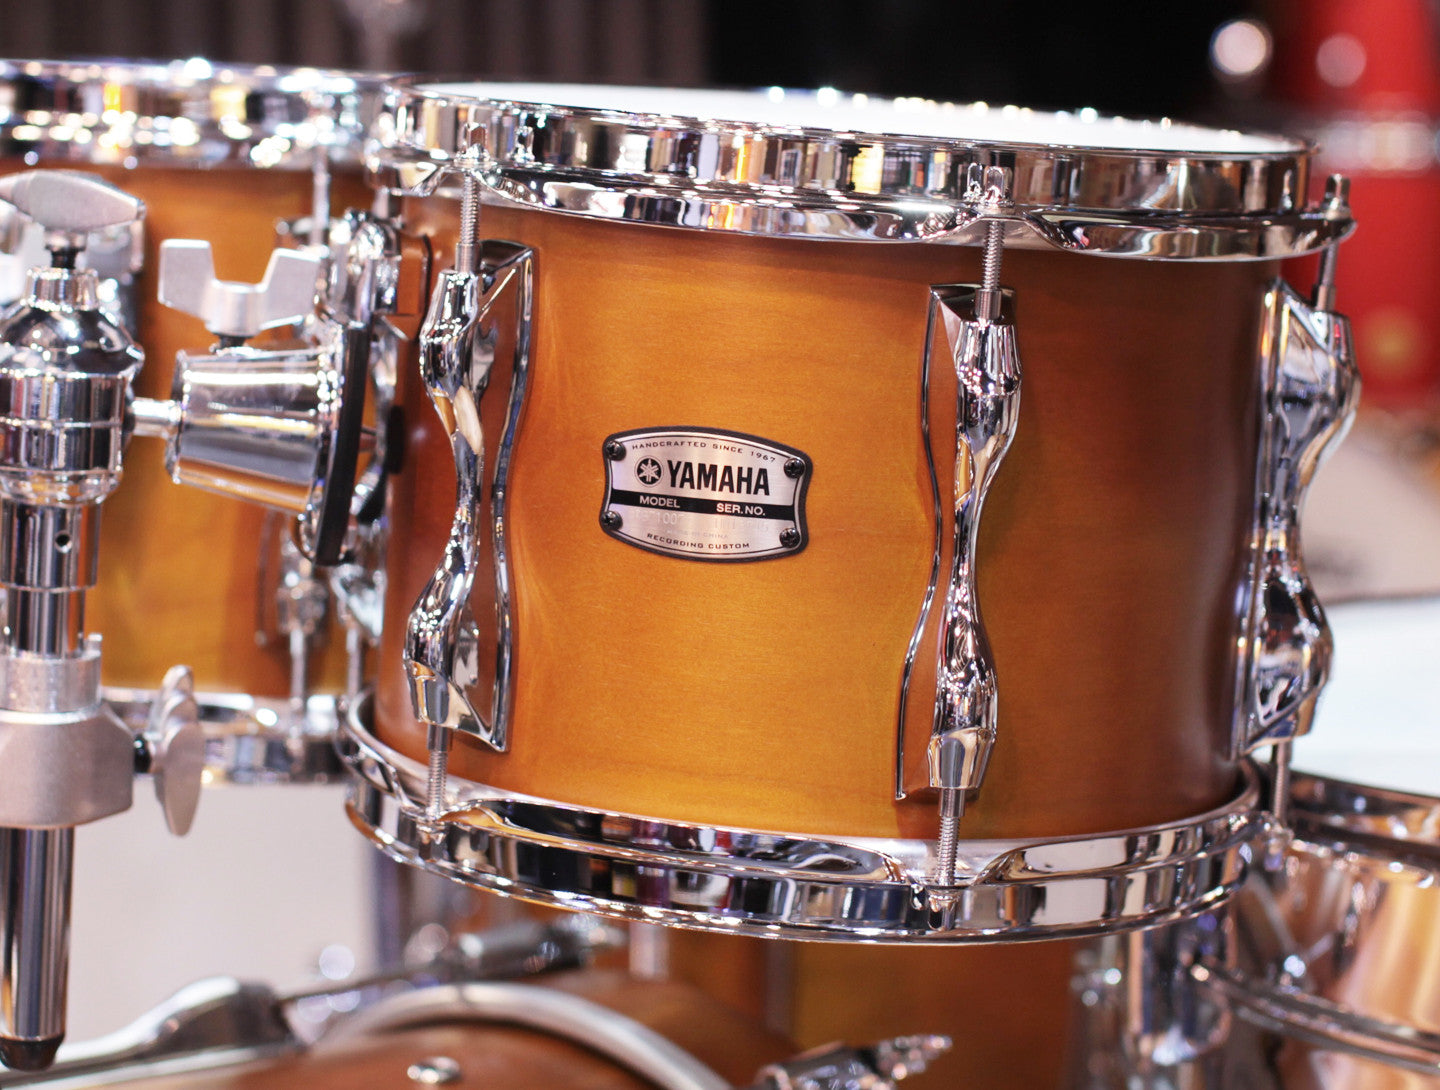 Yamaha 9000 Recording Custom Drum Kit in stock